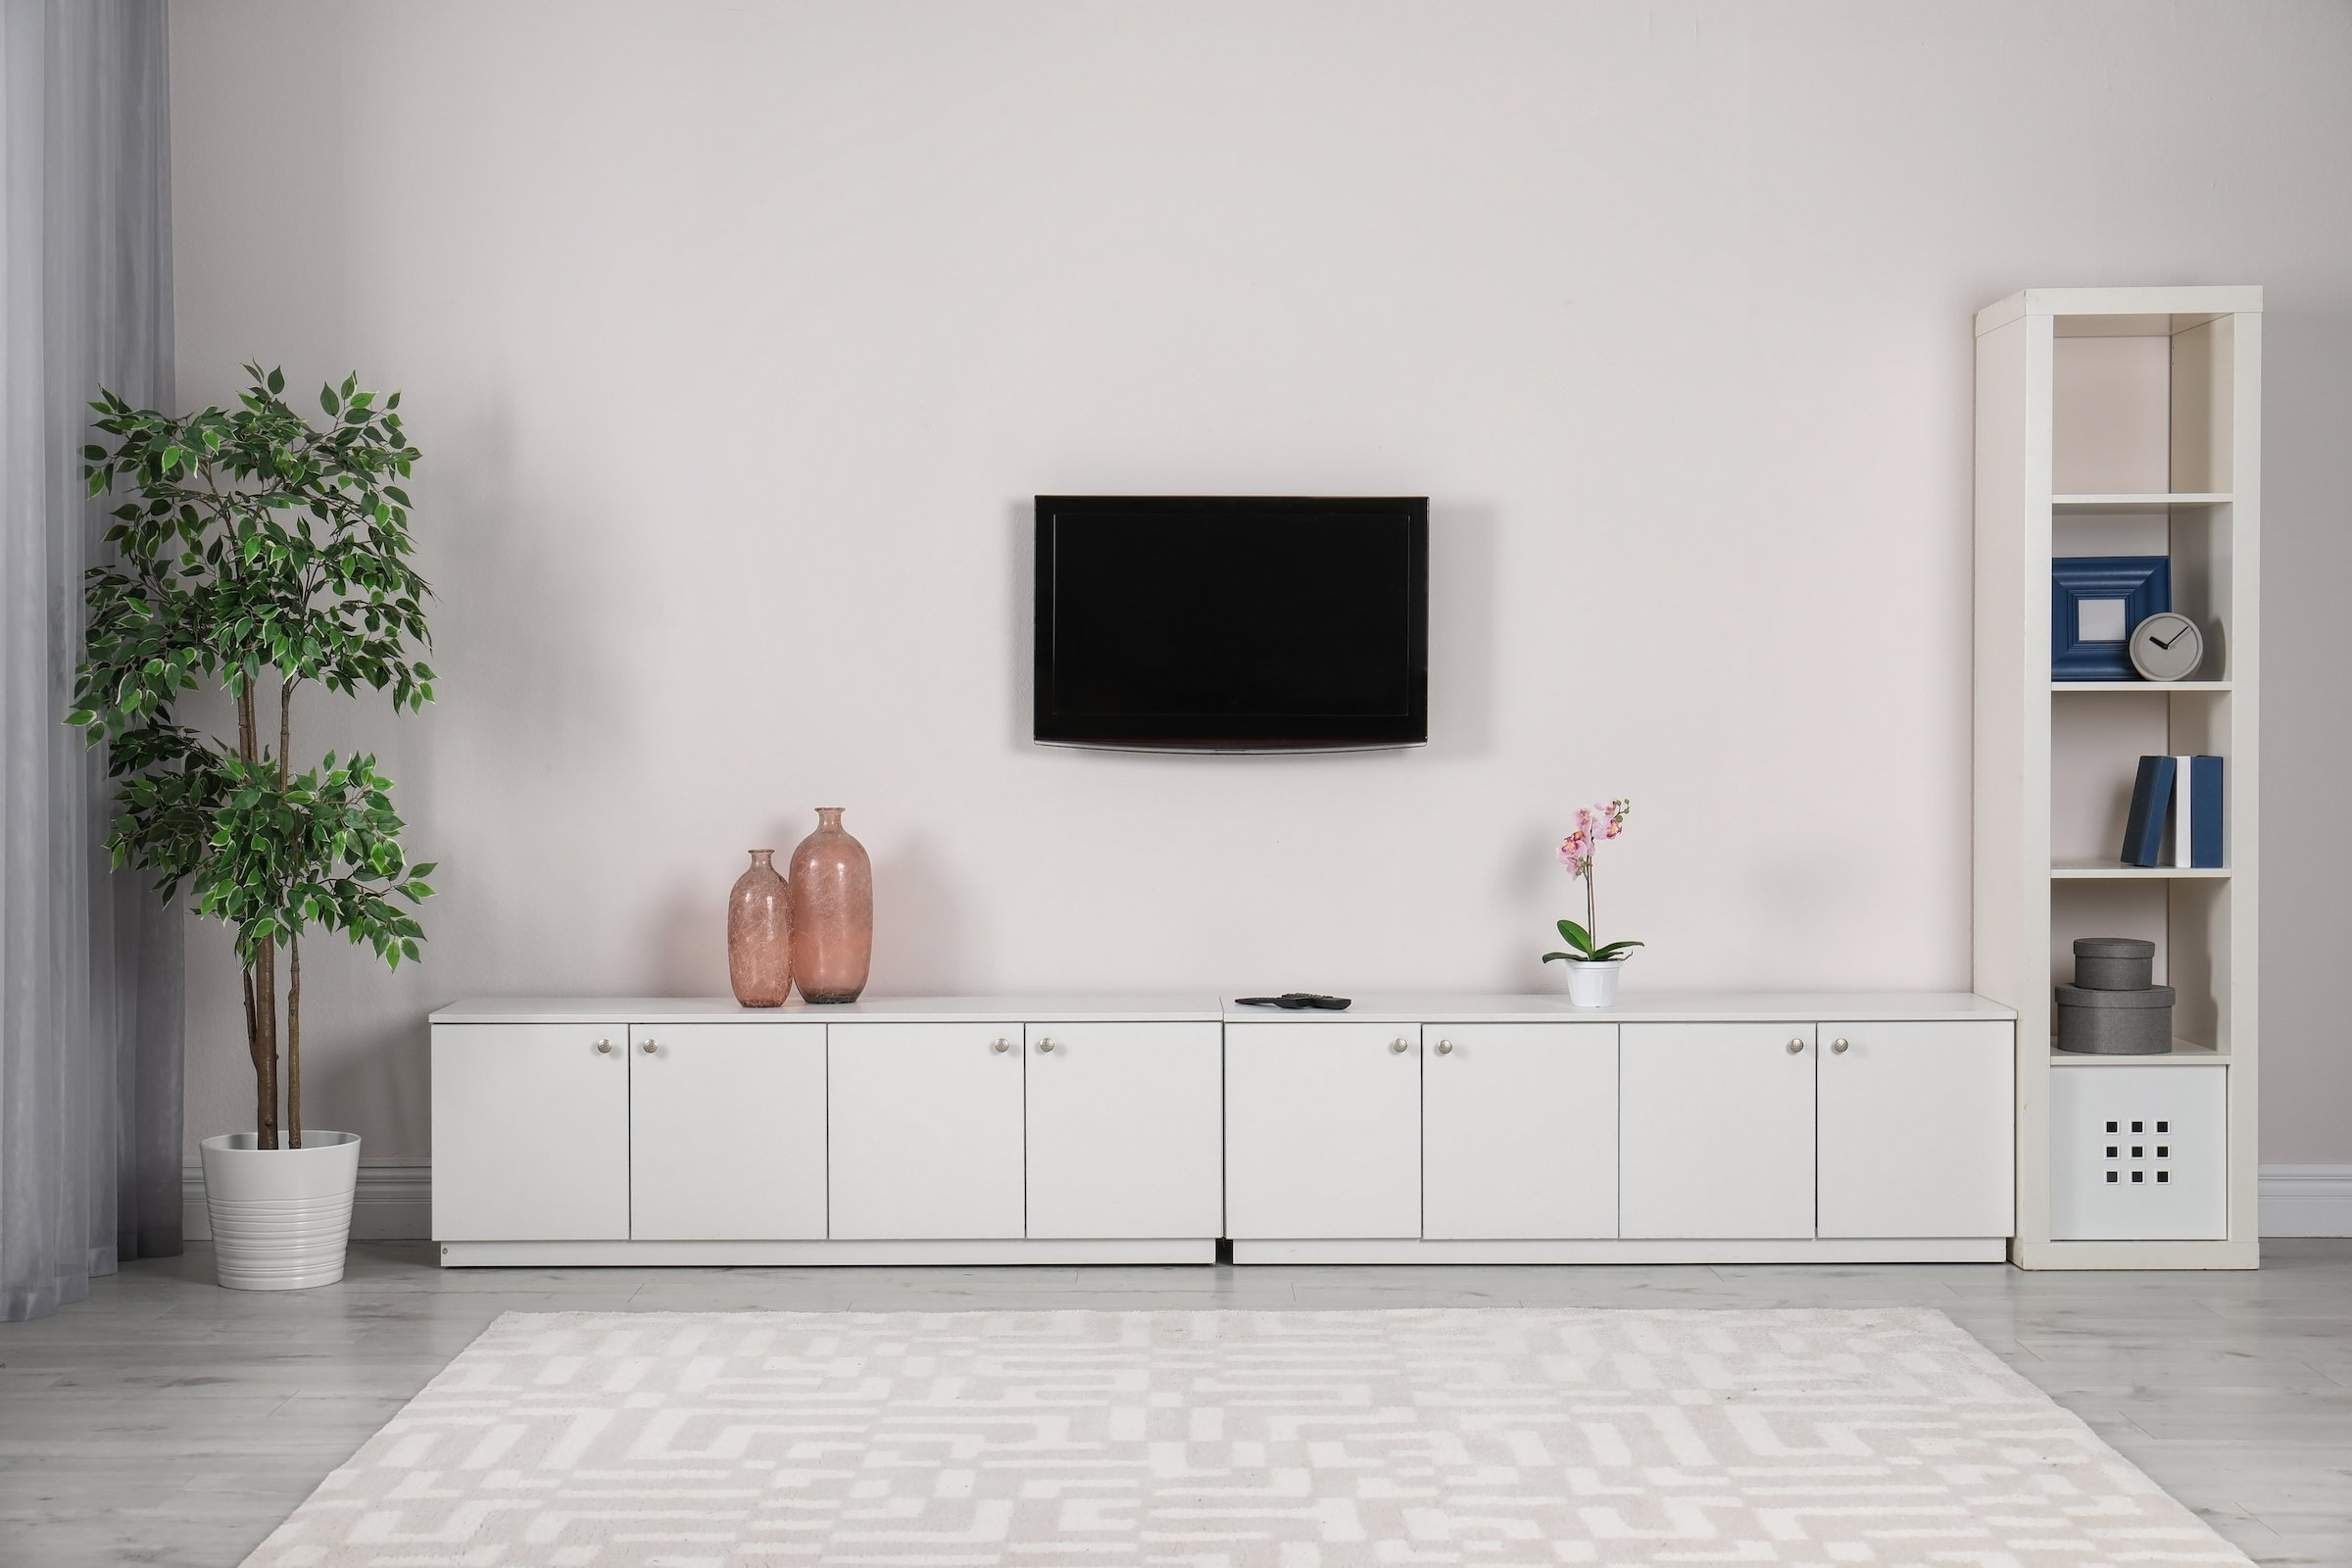 Same day TV mounting options: get it installed by a major retailer.